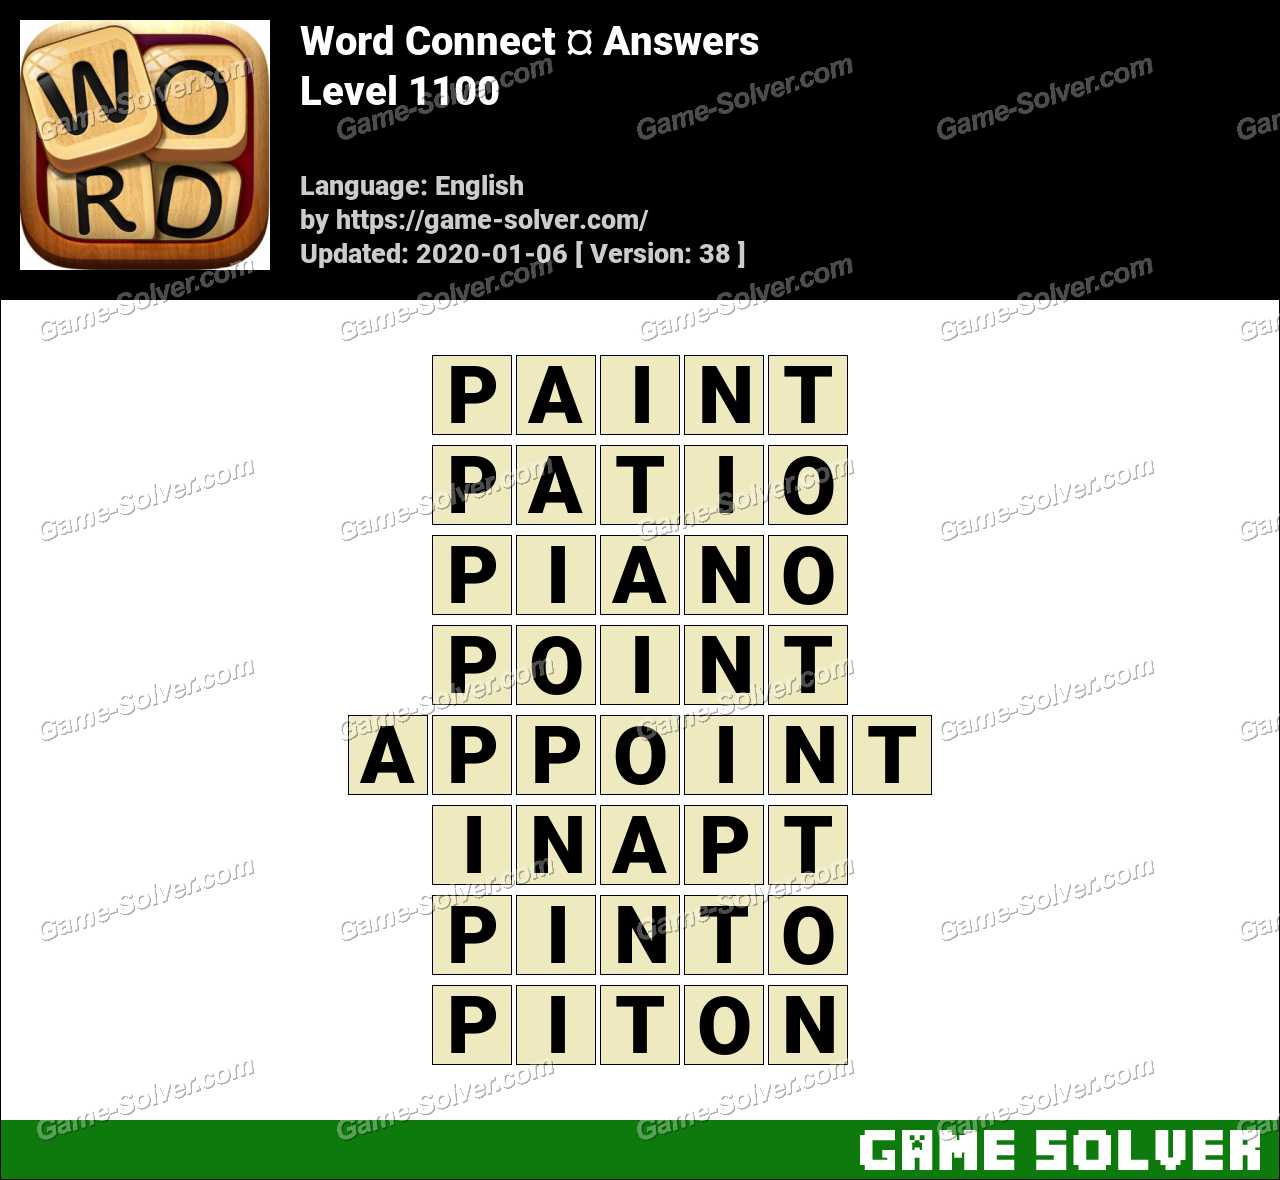 Word Connect Level 1100 Answers